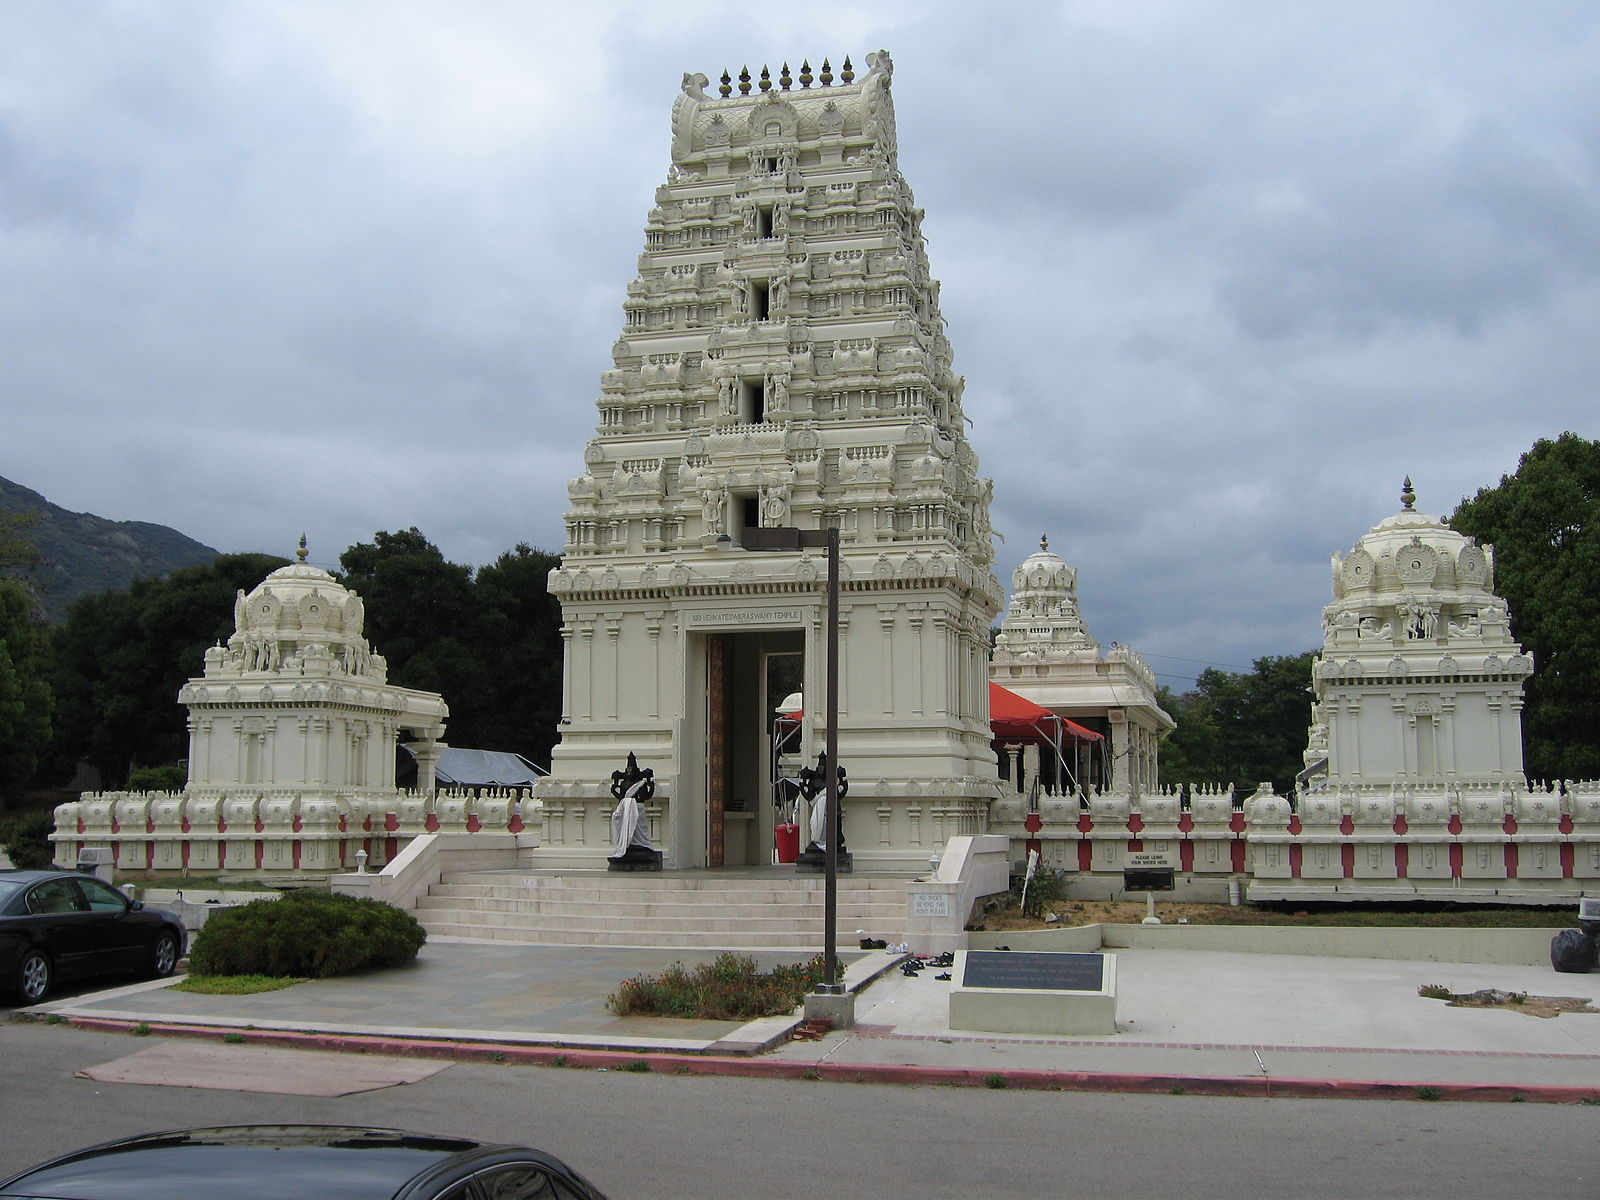 Entrance of the Malibu Hindu Temple in Calabasas, CA. The white facad with carvings is amazing.